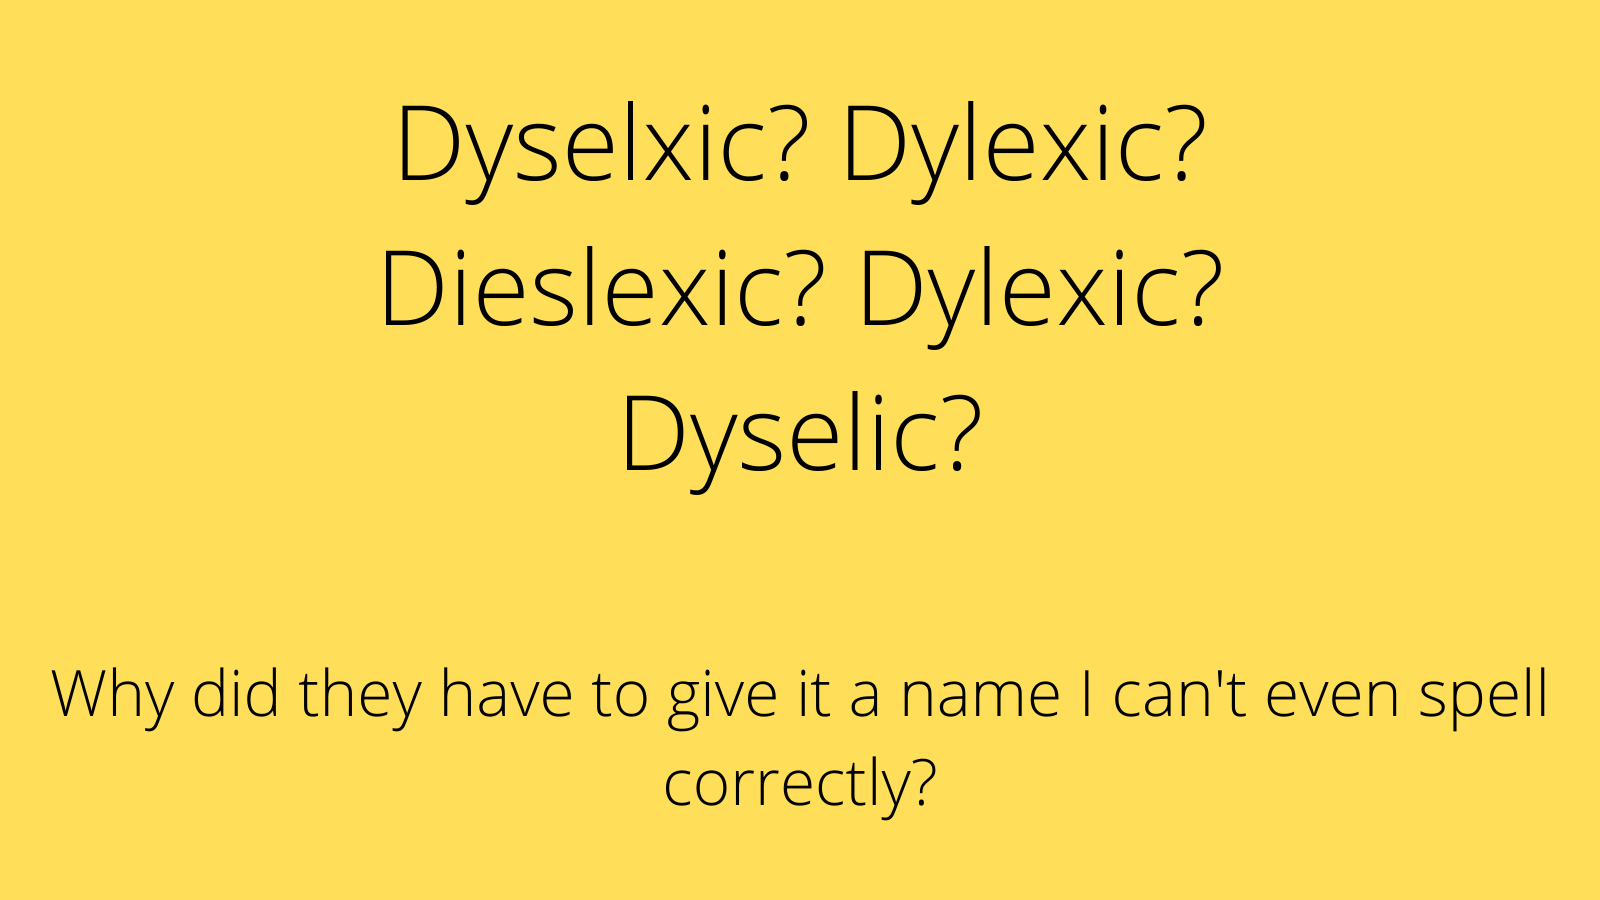 Image showing several attempts of the spelling of the word Dyslexic